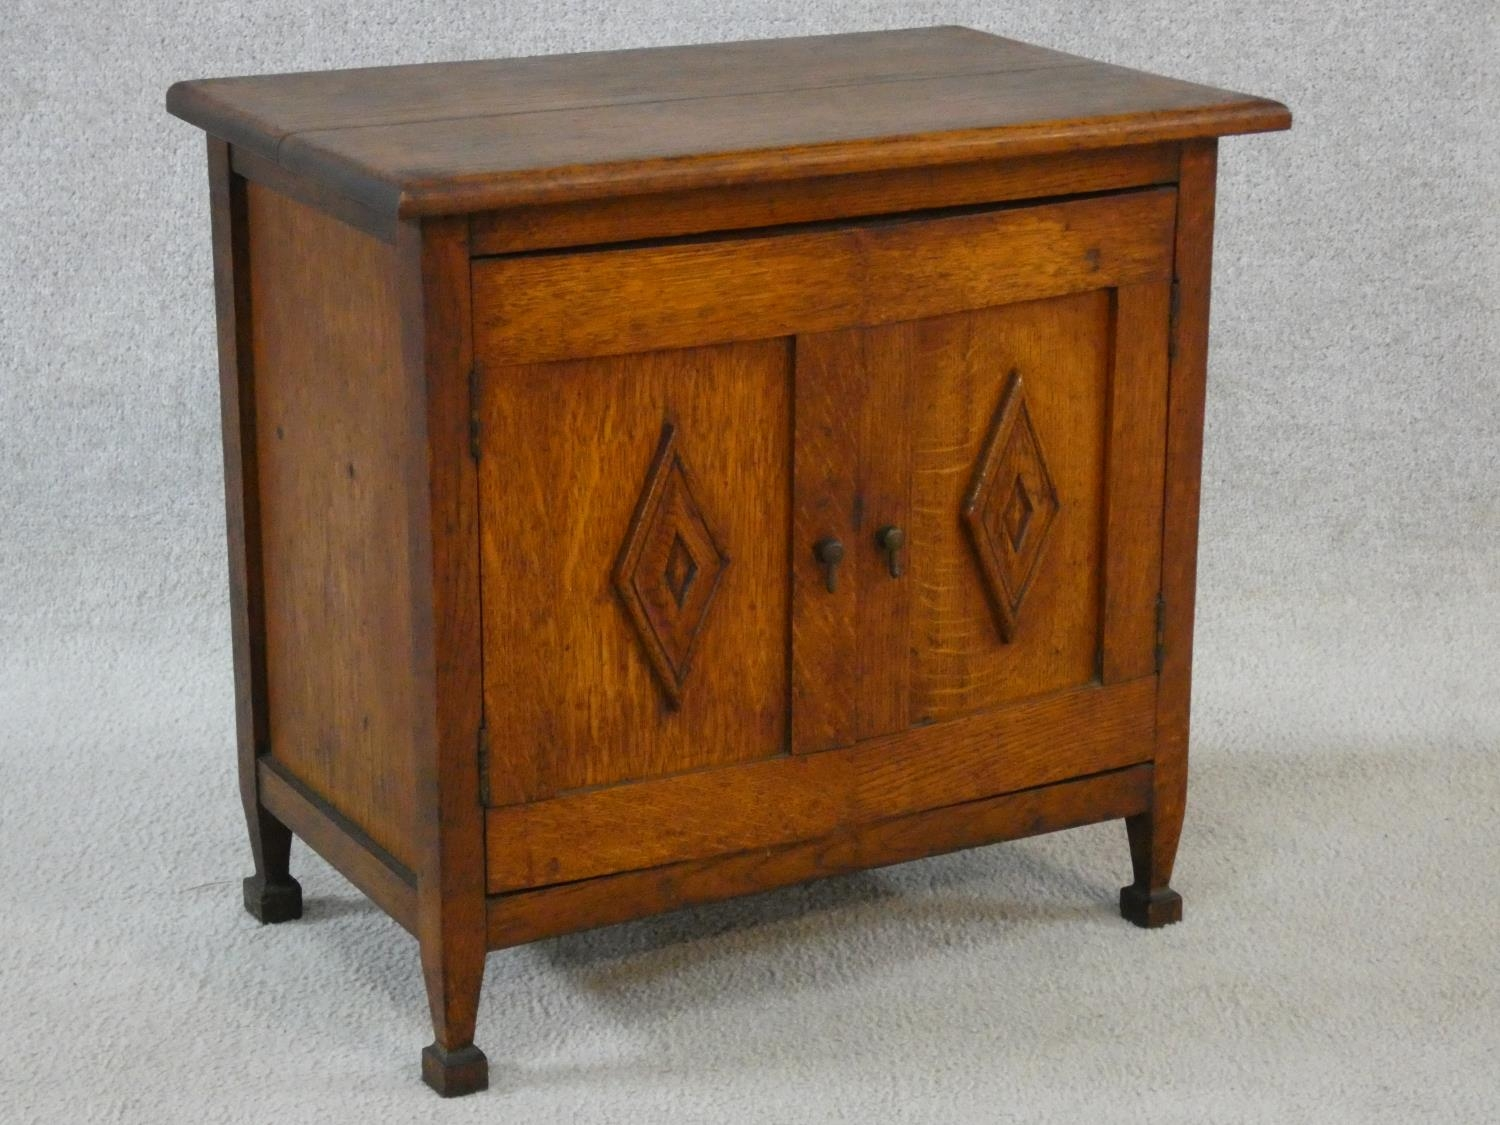 An early 20th century country oak style side cabinet with carved panel doors on squat square - Image 3 of 14